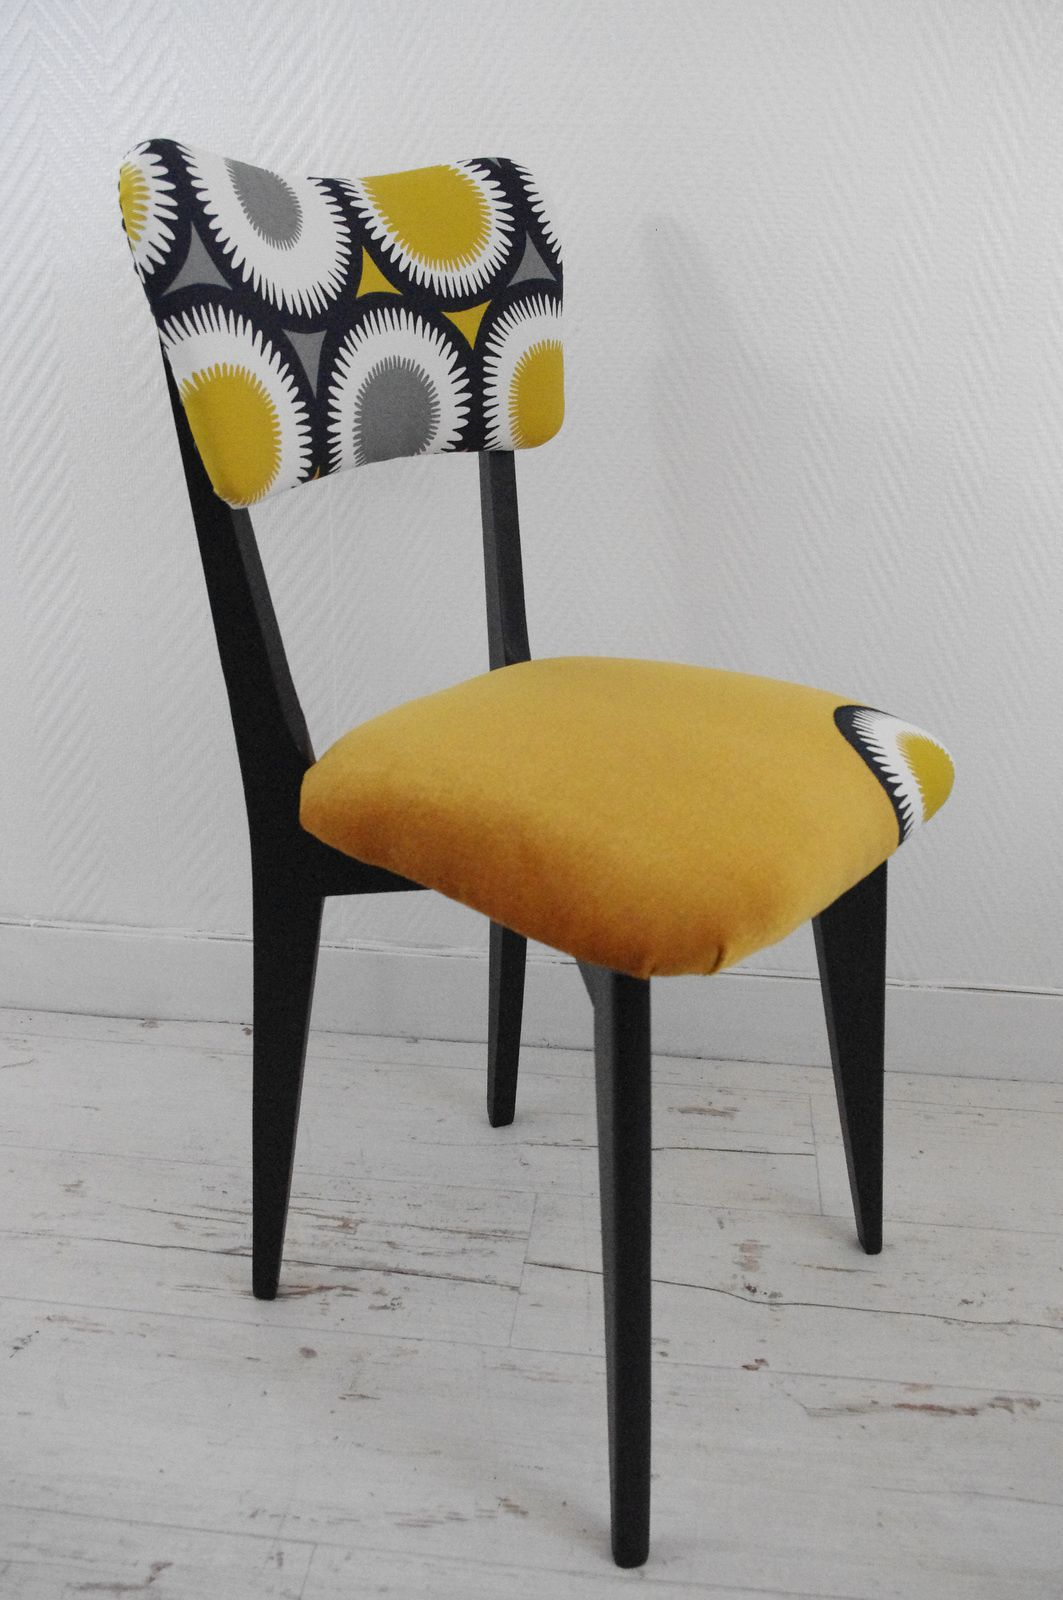 chaises vintage jaune moutarde l 39 abracadabroc. Black Bedroom Furniture Sets. Home Design Ideas